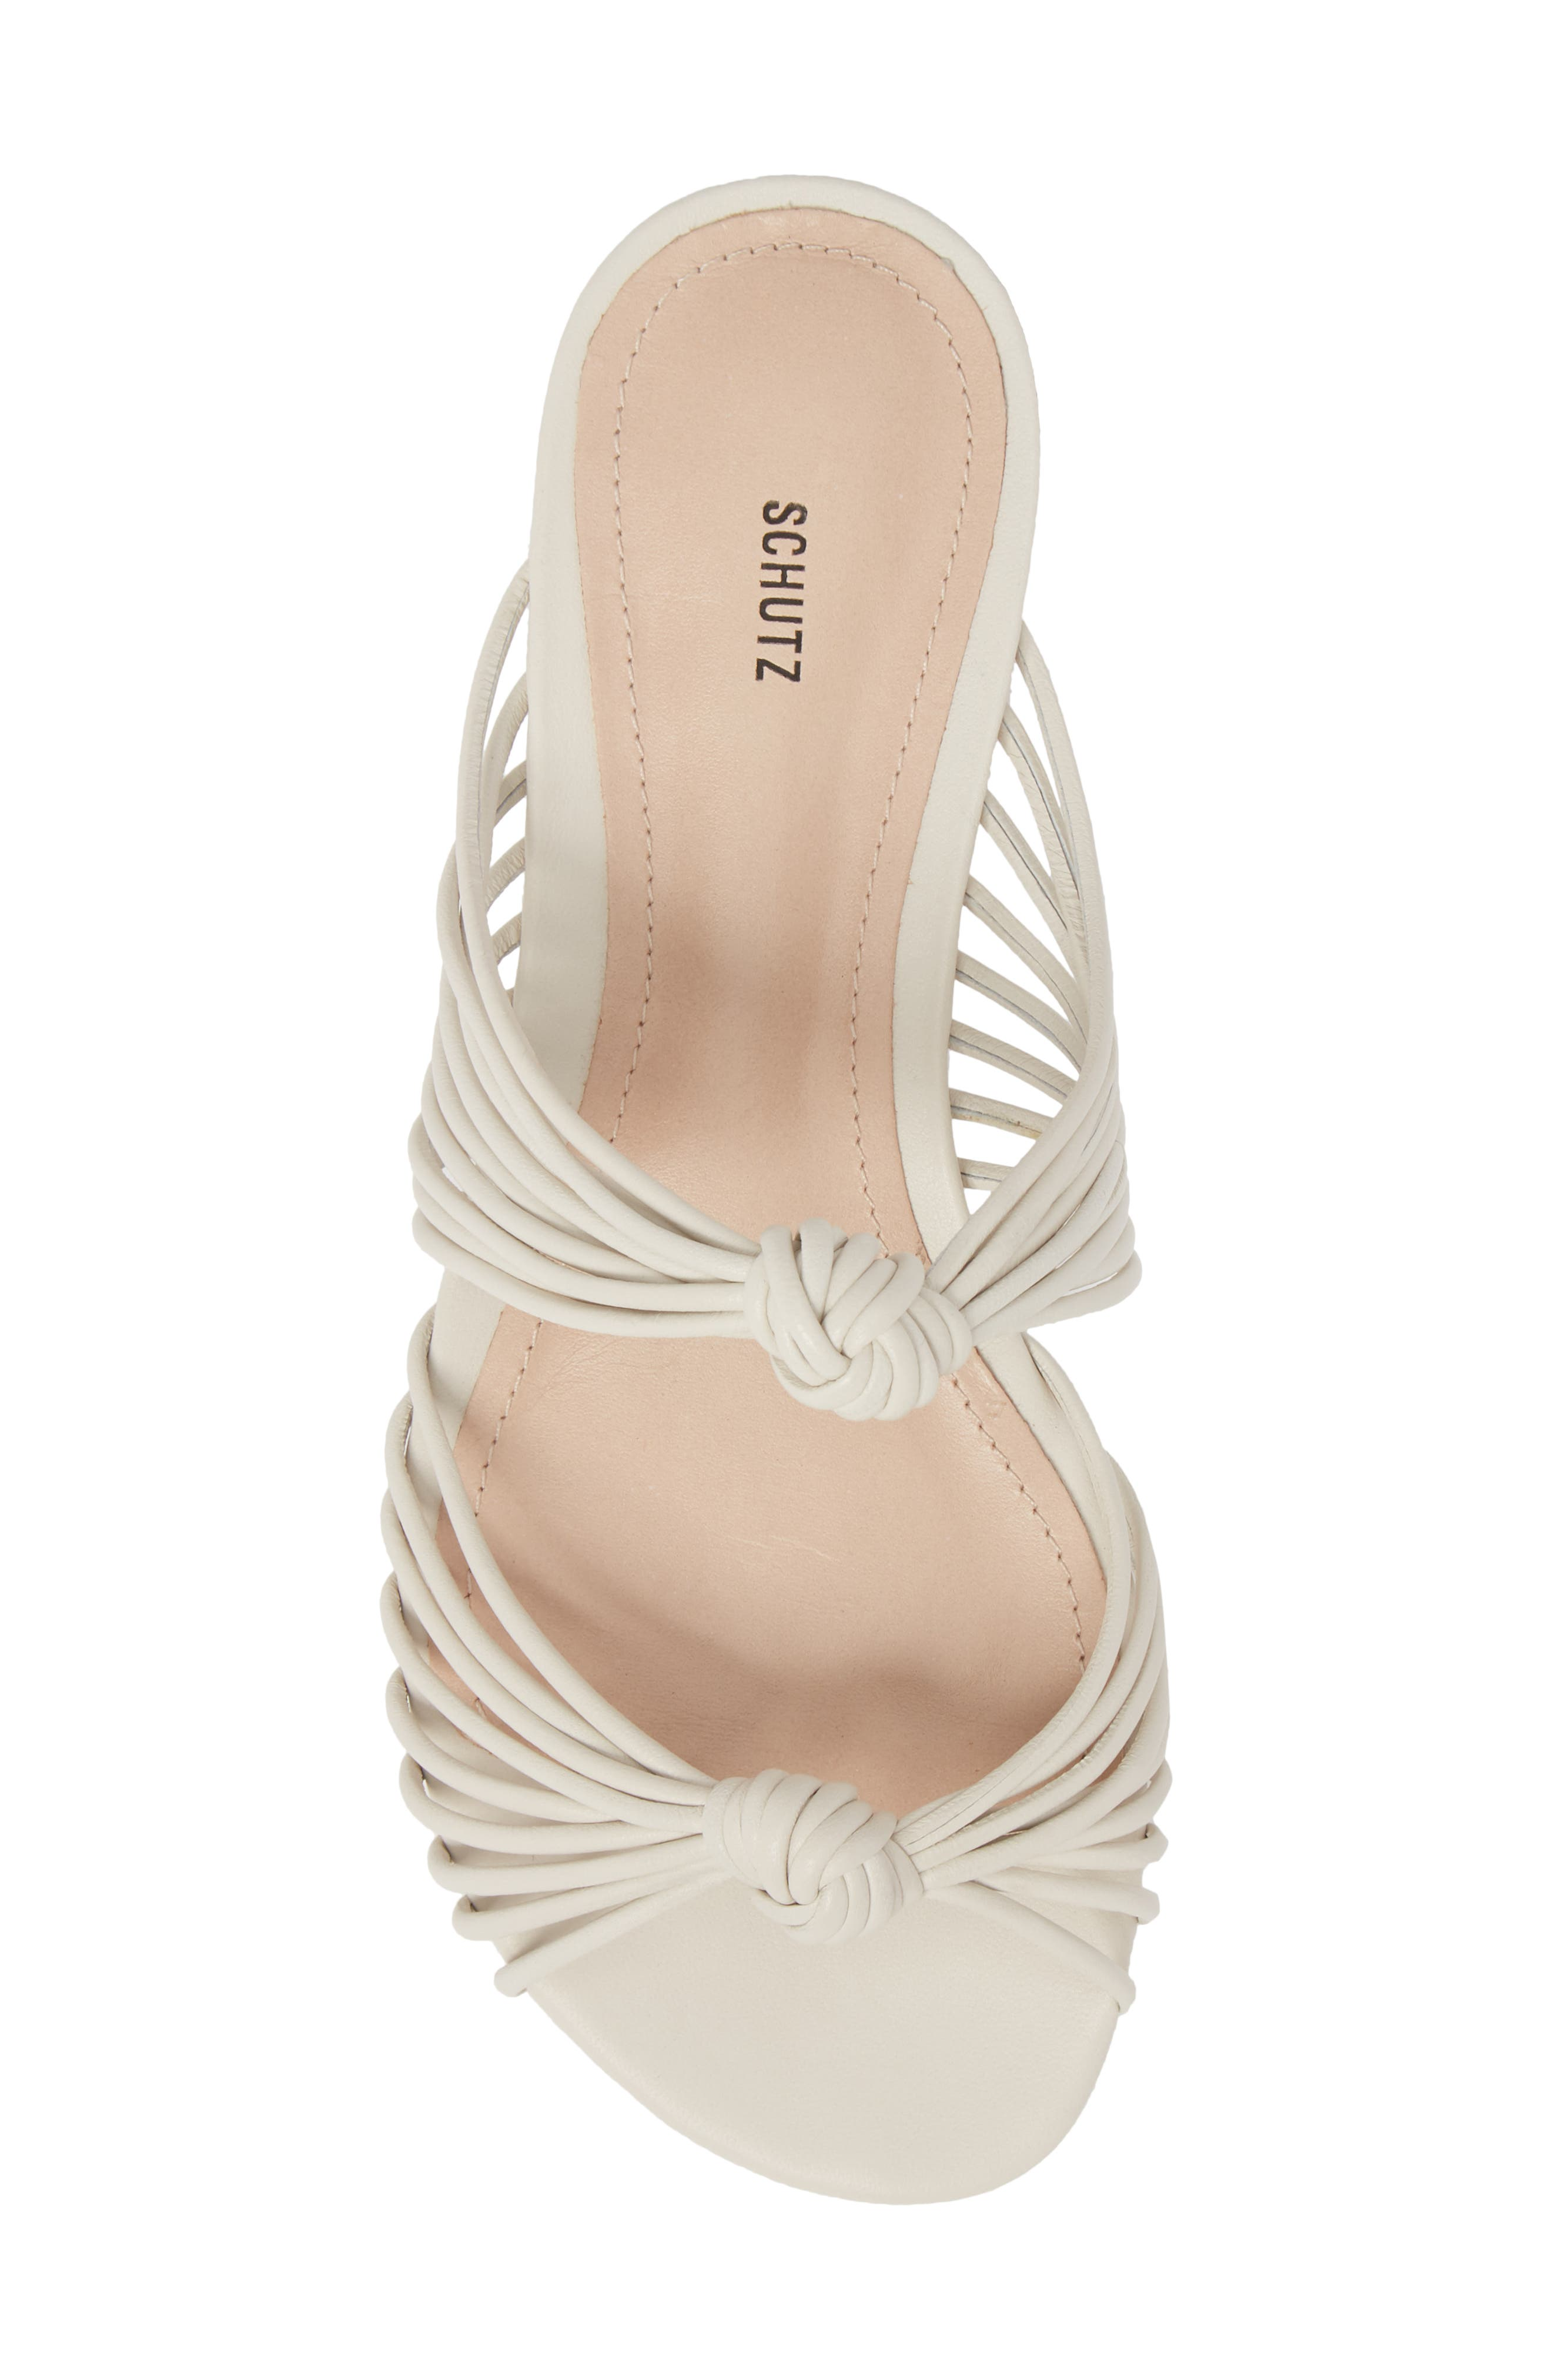 Nitiely Slide Sandal,                             Alternate thumbnail 5, color,                             Pearl Fabric